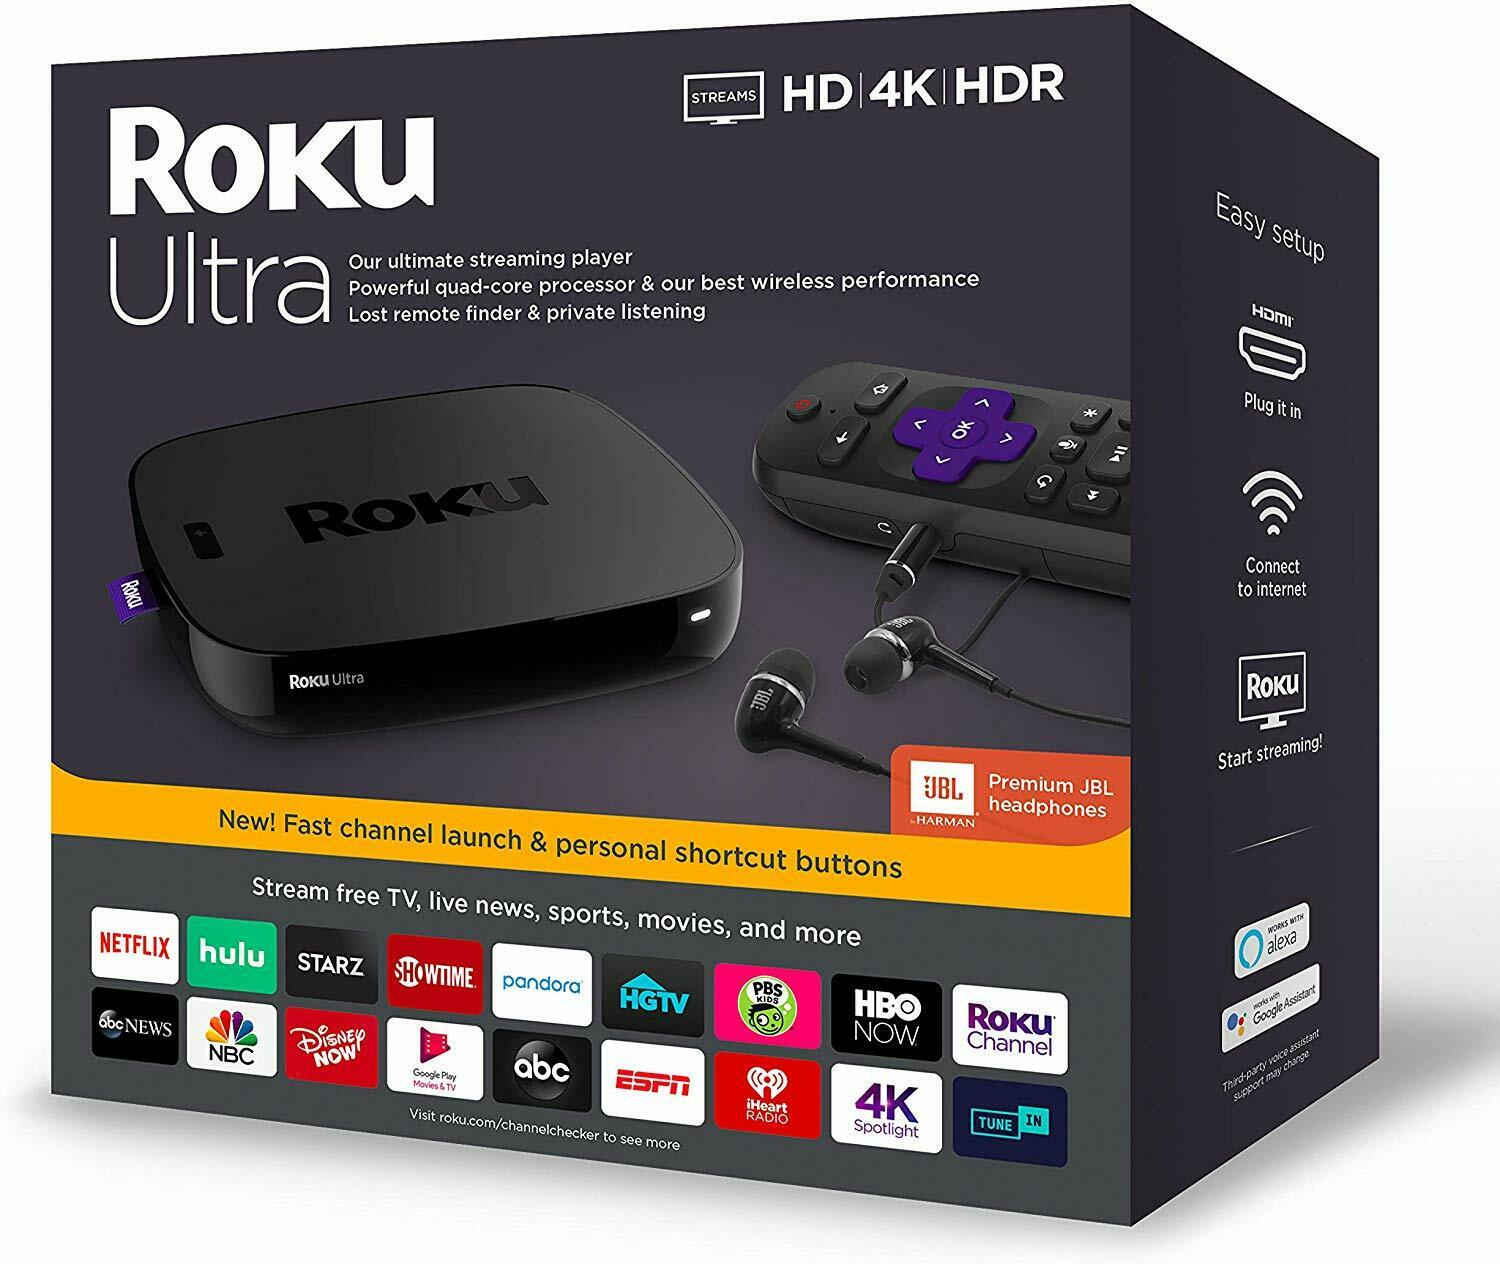 New Roku 4670R Ultra Streaming Media Player 4K HD HDR with Headphones - Black 4670r hdr headphones media new player roku streaming ultra with